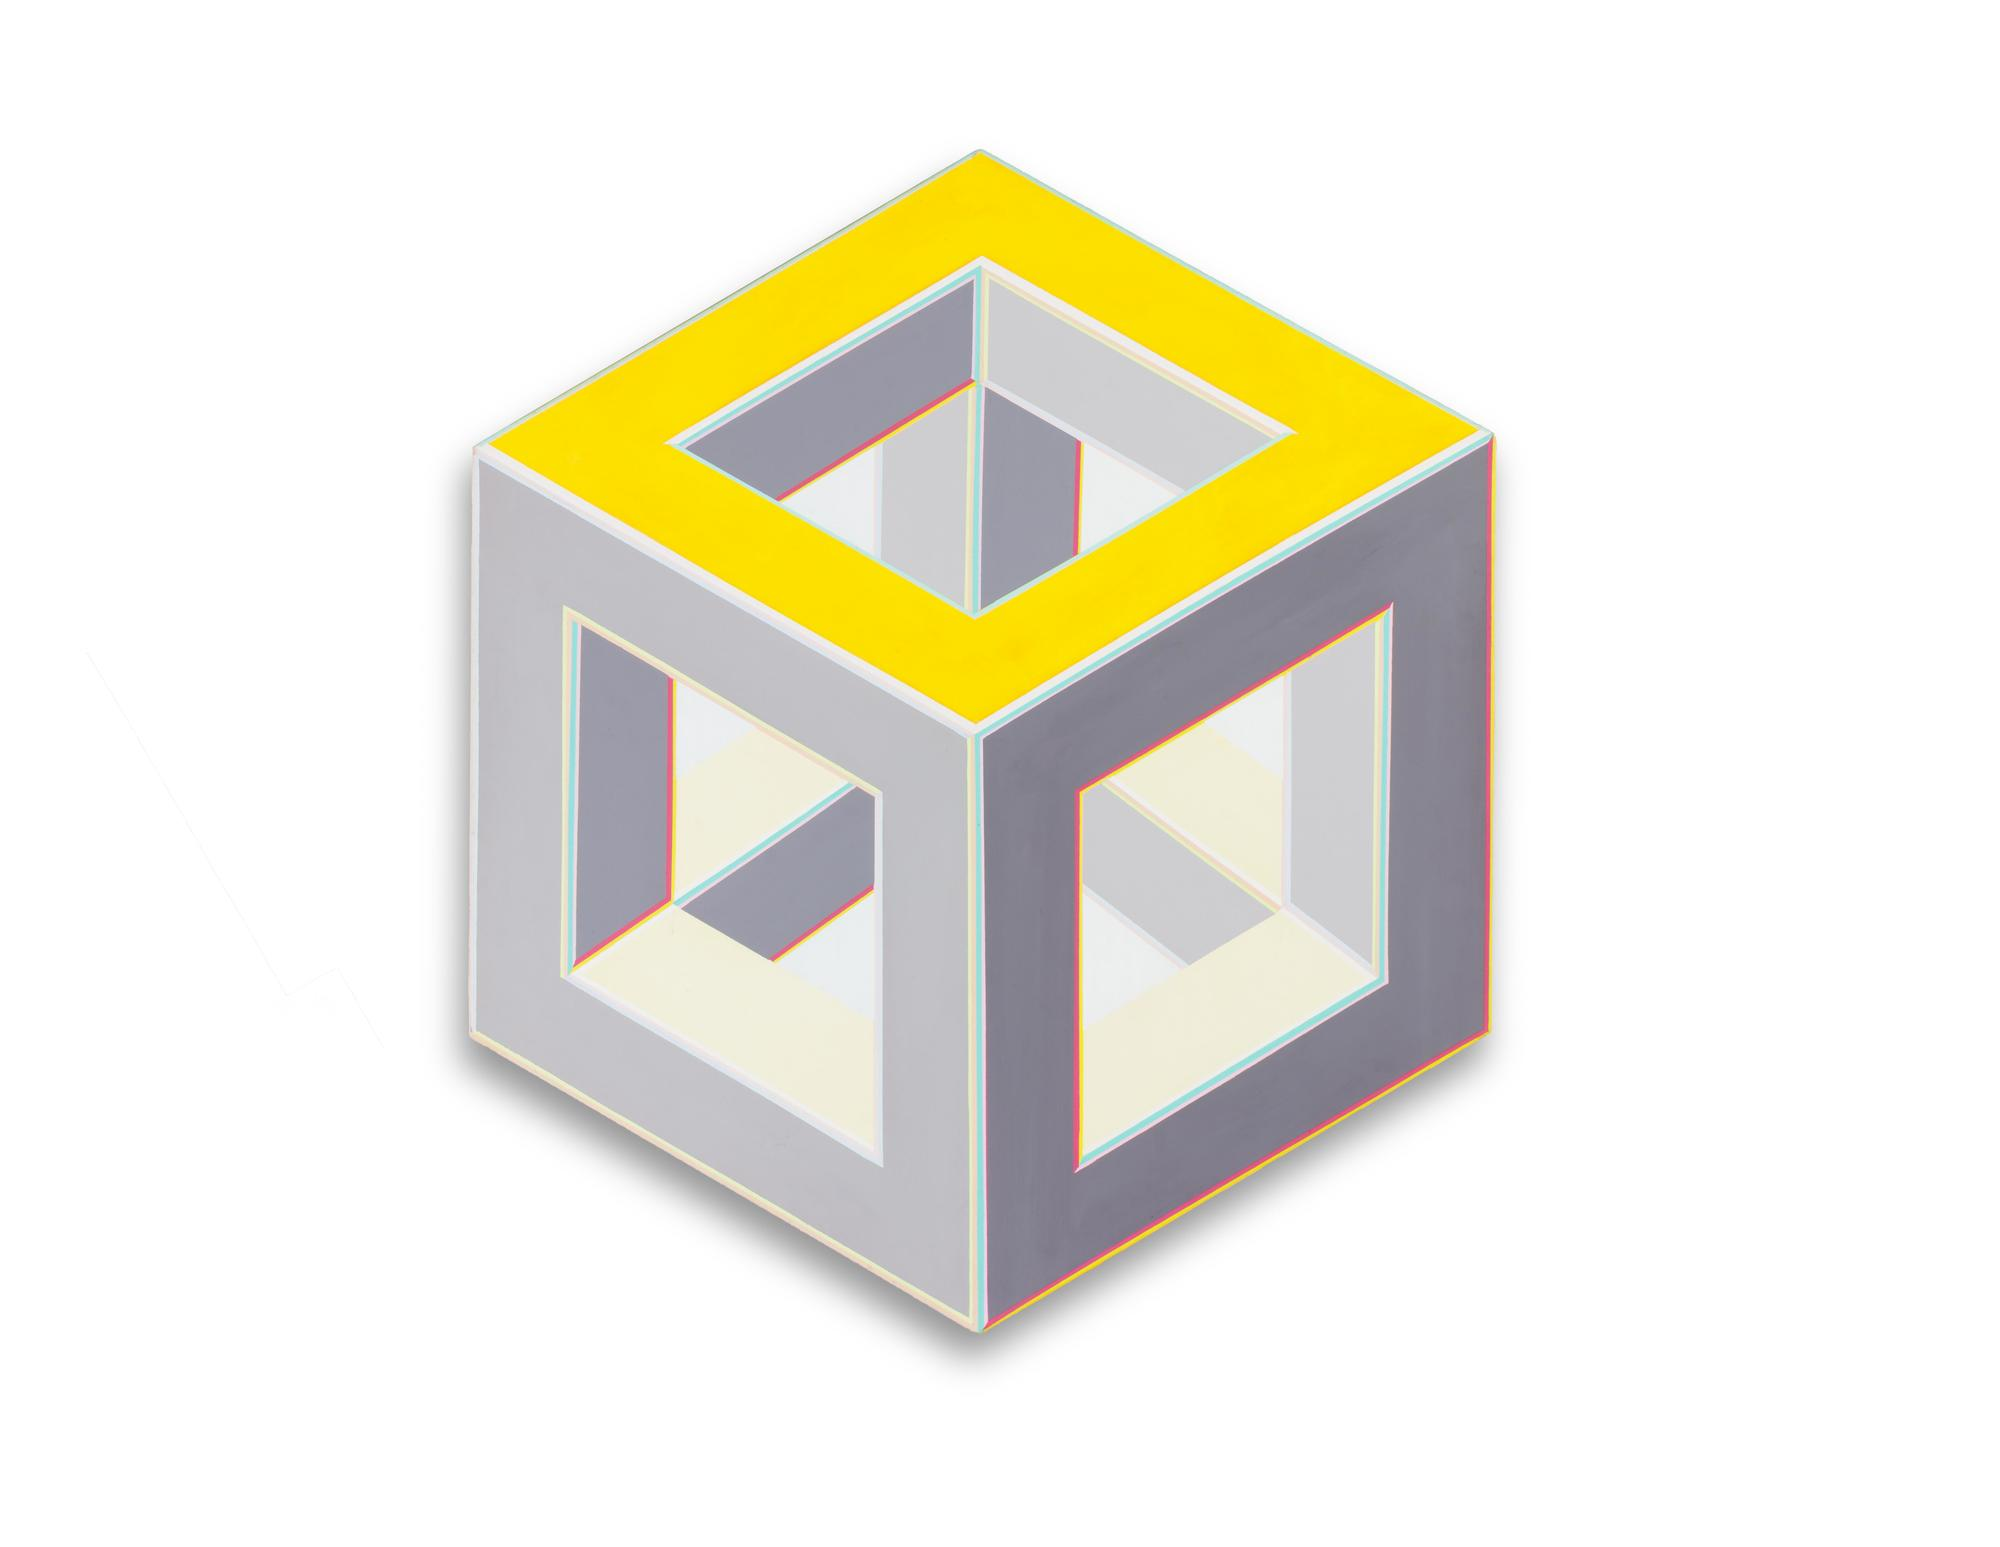 Painting of a 3-D cube offset on a biased angle from above. The cube has thicker edges and is hollow in the center. The top face's edges are bright yellow, the side edges are grey and the inside edges are a pale yellow.